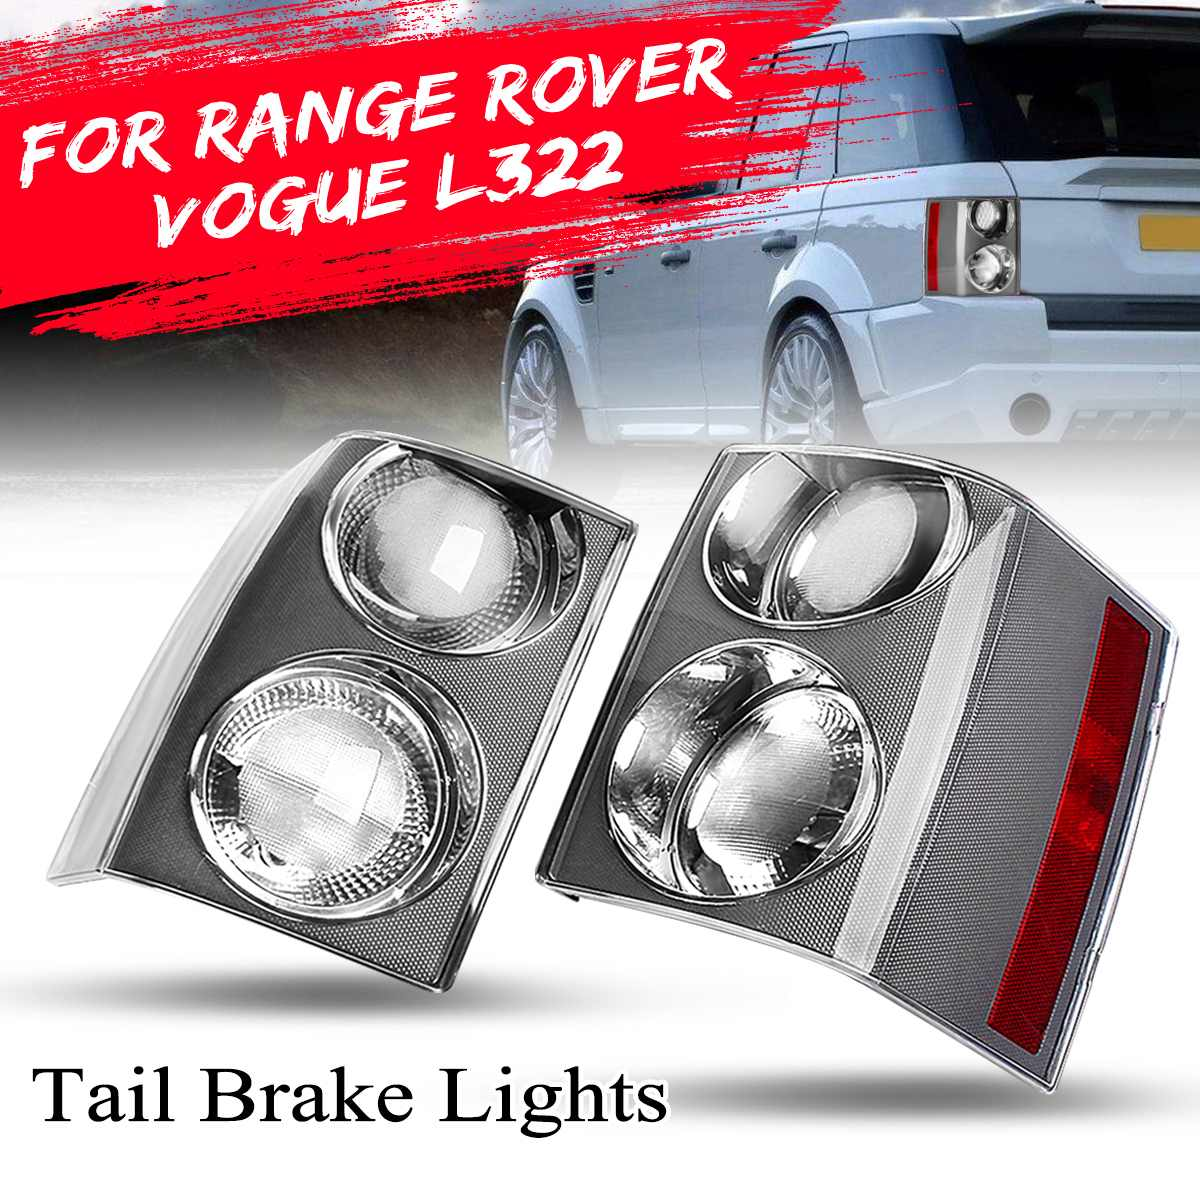 FOR RANGE ROVER VOGUE L322 2002 2003 2004 2005 2006 2007 2008 2009 1 Pair Tail Rear Light Lamp Brake Stop Light Clear LensFOR RANGE ROVER VOGUE L322 2002 2003 2004 2005 2006 2007 2008 2009 1 Pair Tail Rear Light Lamp Brake Stop Light Clear Lens